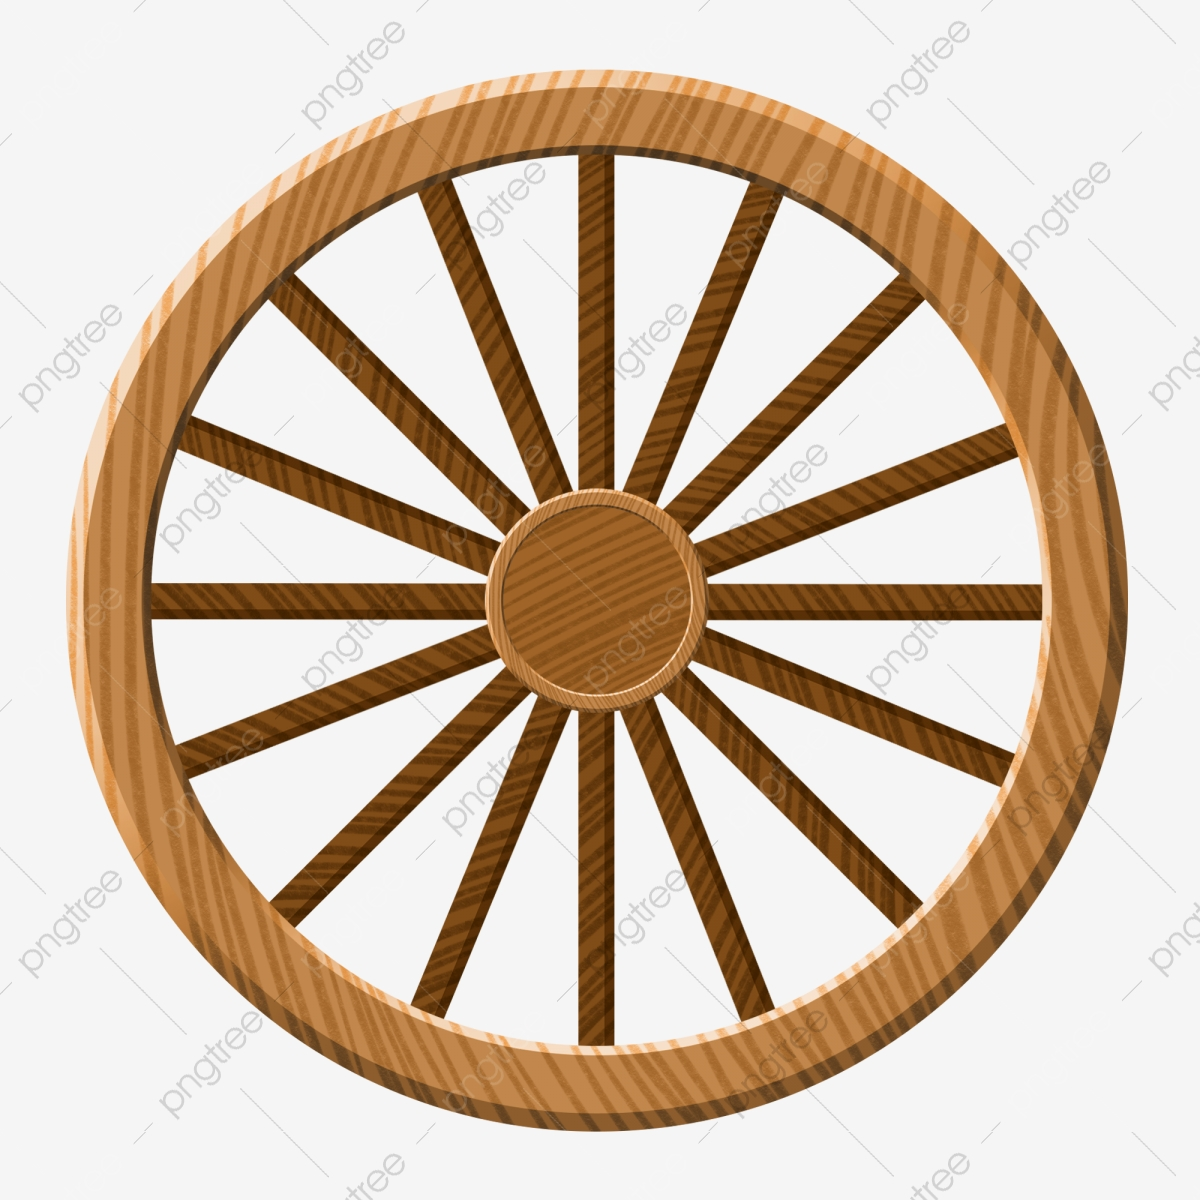 png black and white download Wood car raft illustration. Wooden wheel clipart